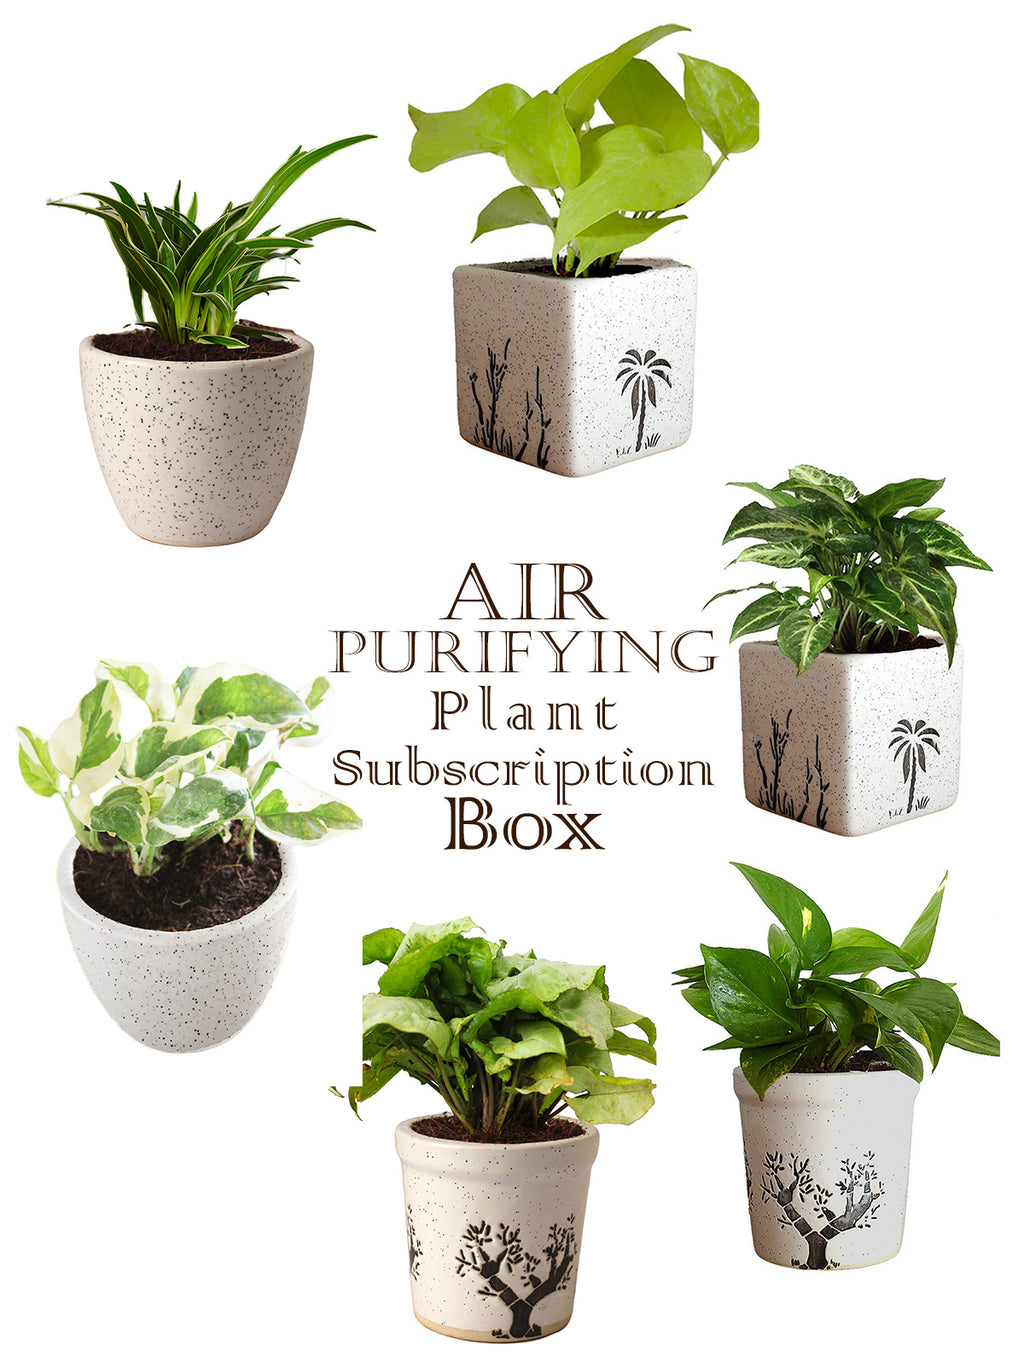 Air Purifying Plant Subscription Box in White Ceramic Pots